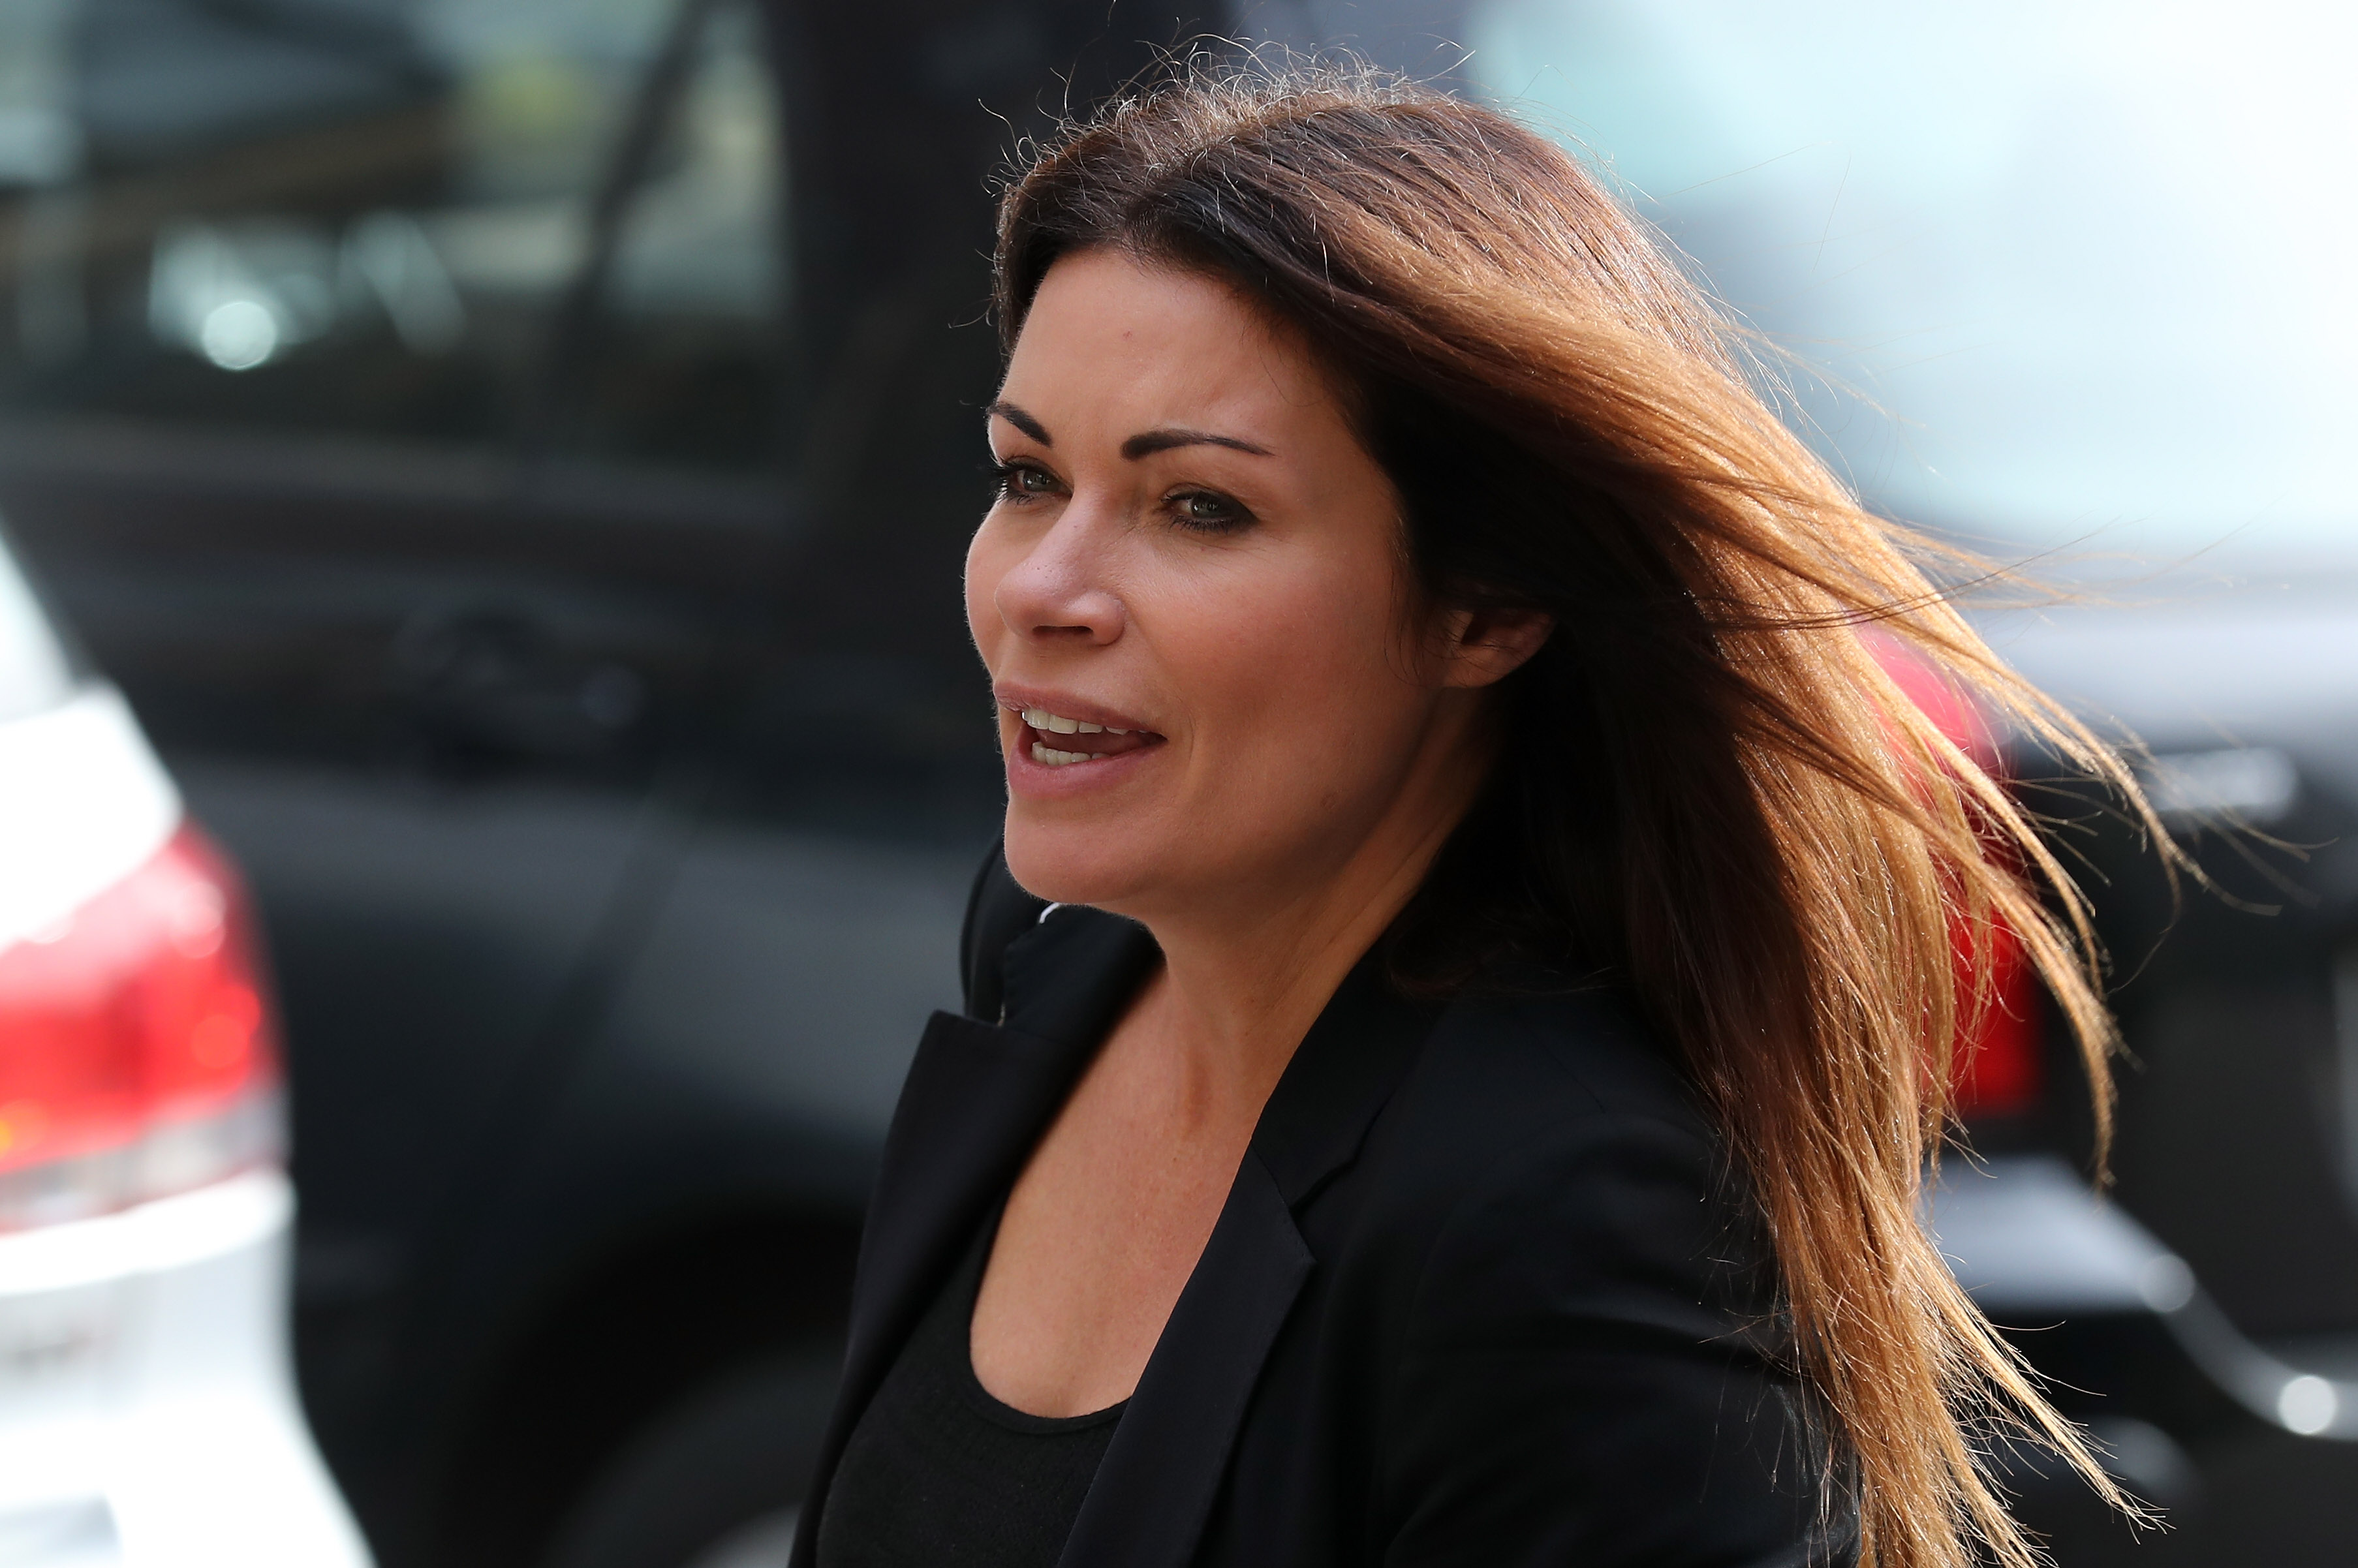 SALFORD, ENGLAND - OCTOBER 06:  Actress Alison King arrive at Salford Cathedral on October 6, 2017 in Salford, England. Actress Liz Dawn who died aged 77, played Vera Duckworth in Coronation Street for 34 years. She was  diagnosed with lung disease emphysema and was written out of the show in 2008 at her own request.  (Photo by Christopher Furlong/Getty Images)